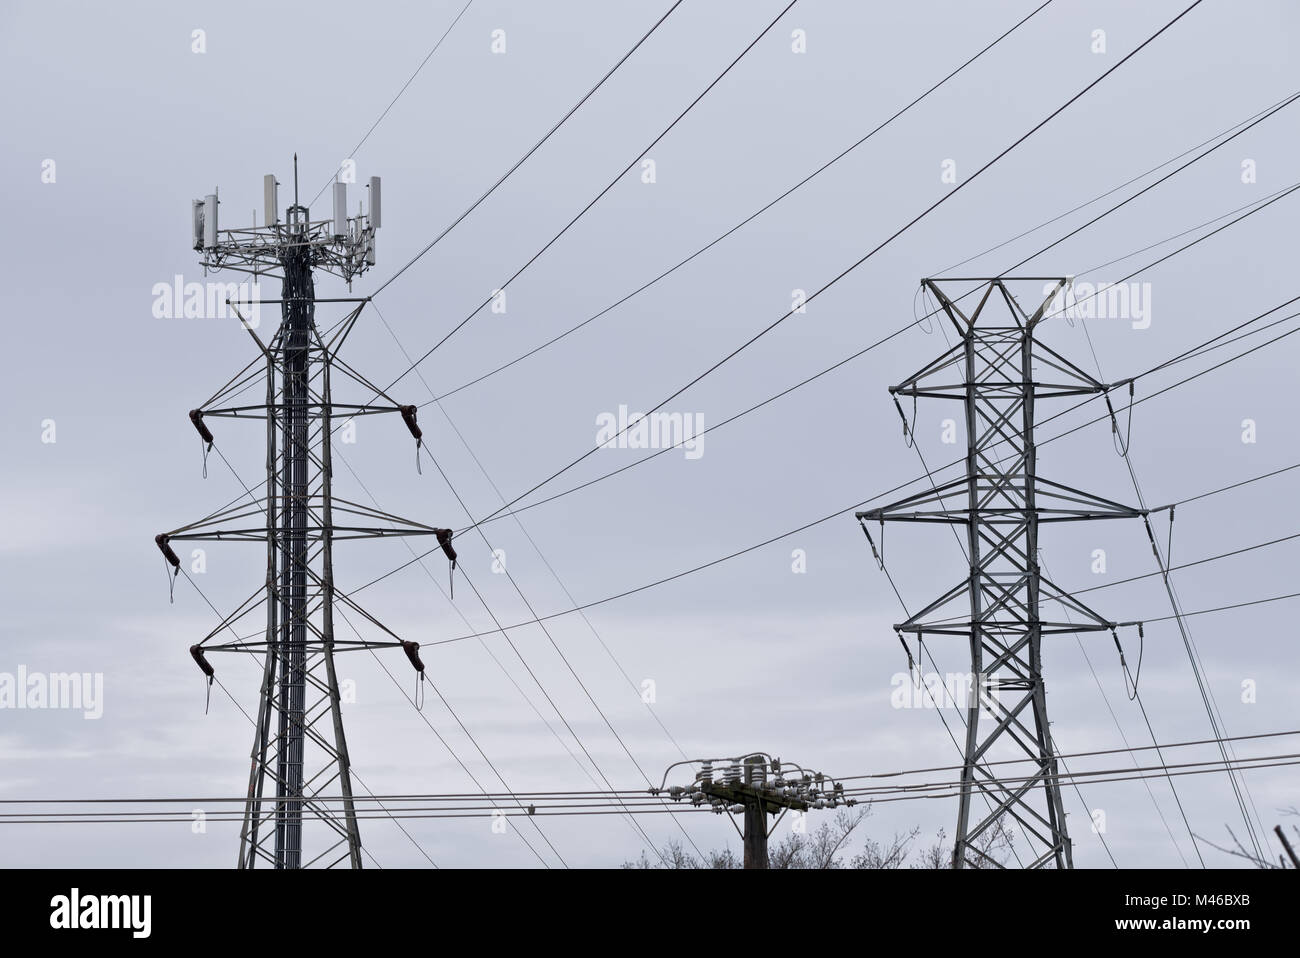 Communication Antennas On Electrical Power Transmission Line Towers Stock Photo Alamy